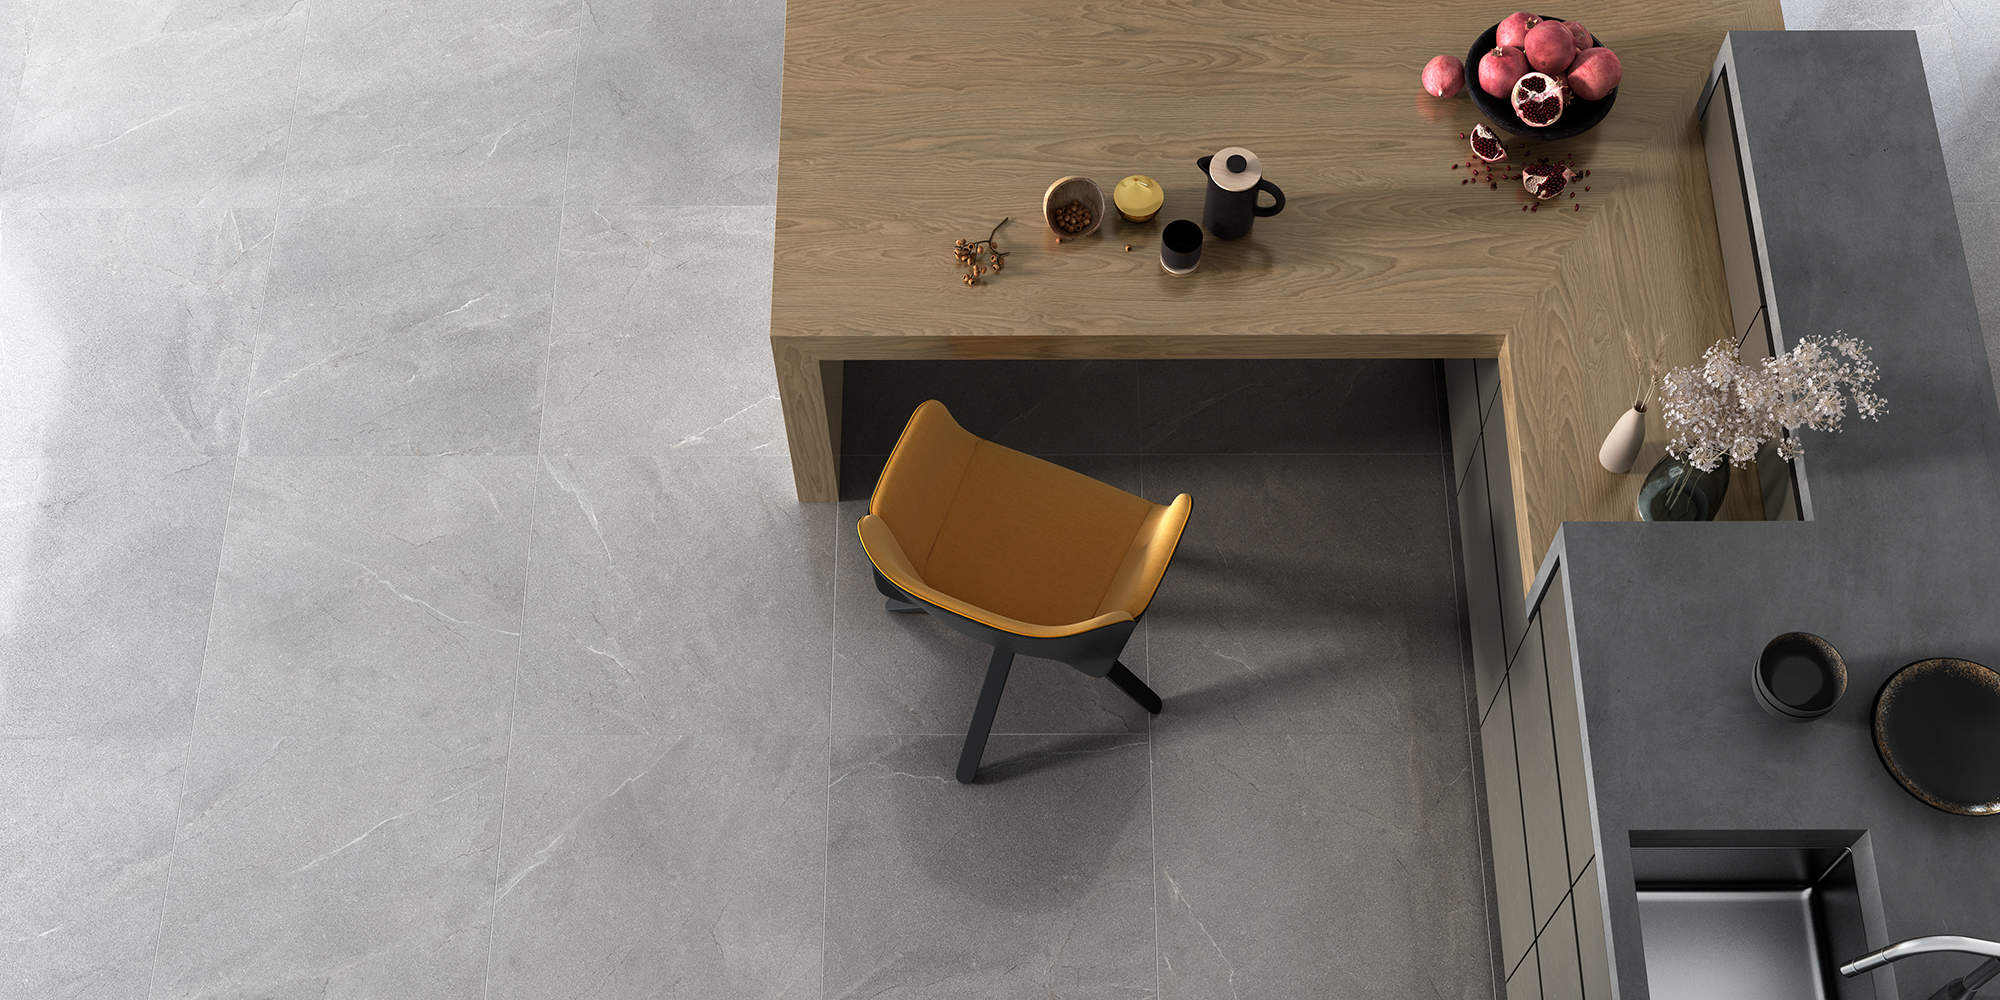 Terra 60x60. Natural stone look semi-polished porcelain tiles suitable for walls and floors.